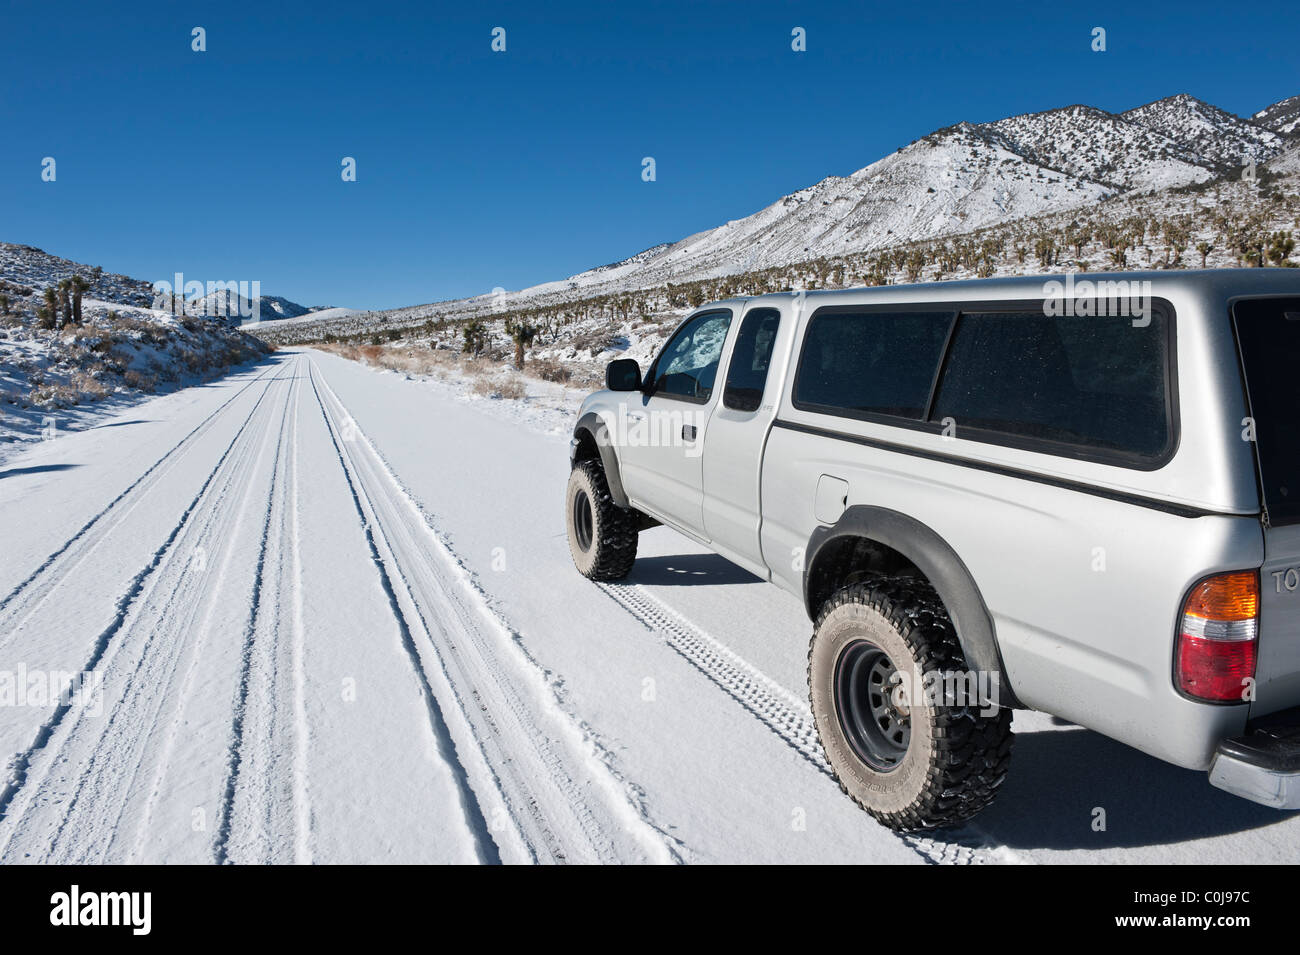 4 wheel drive truck on Snow covered high desert road, Death Valley national park, California - Stock Image